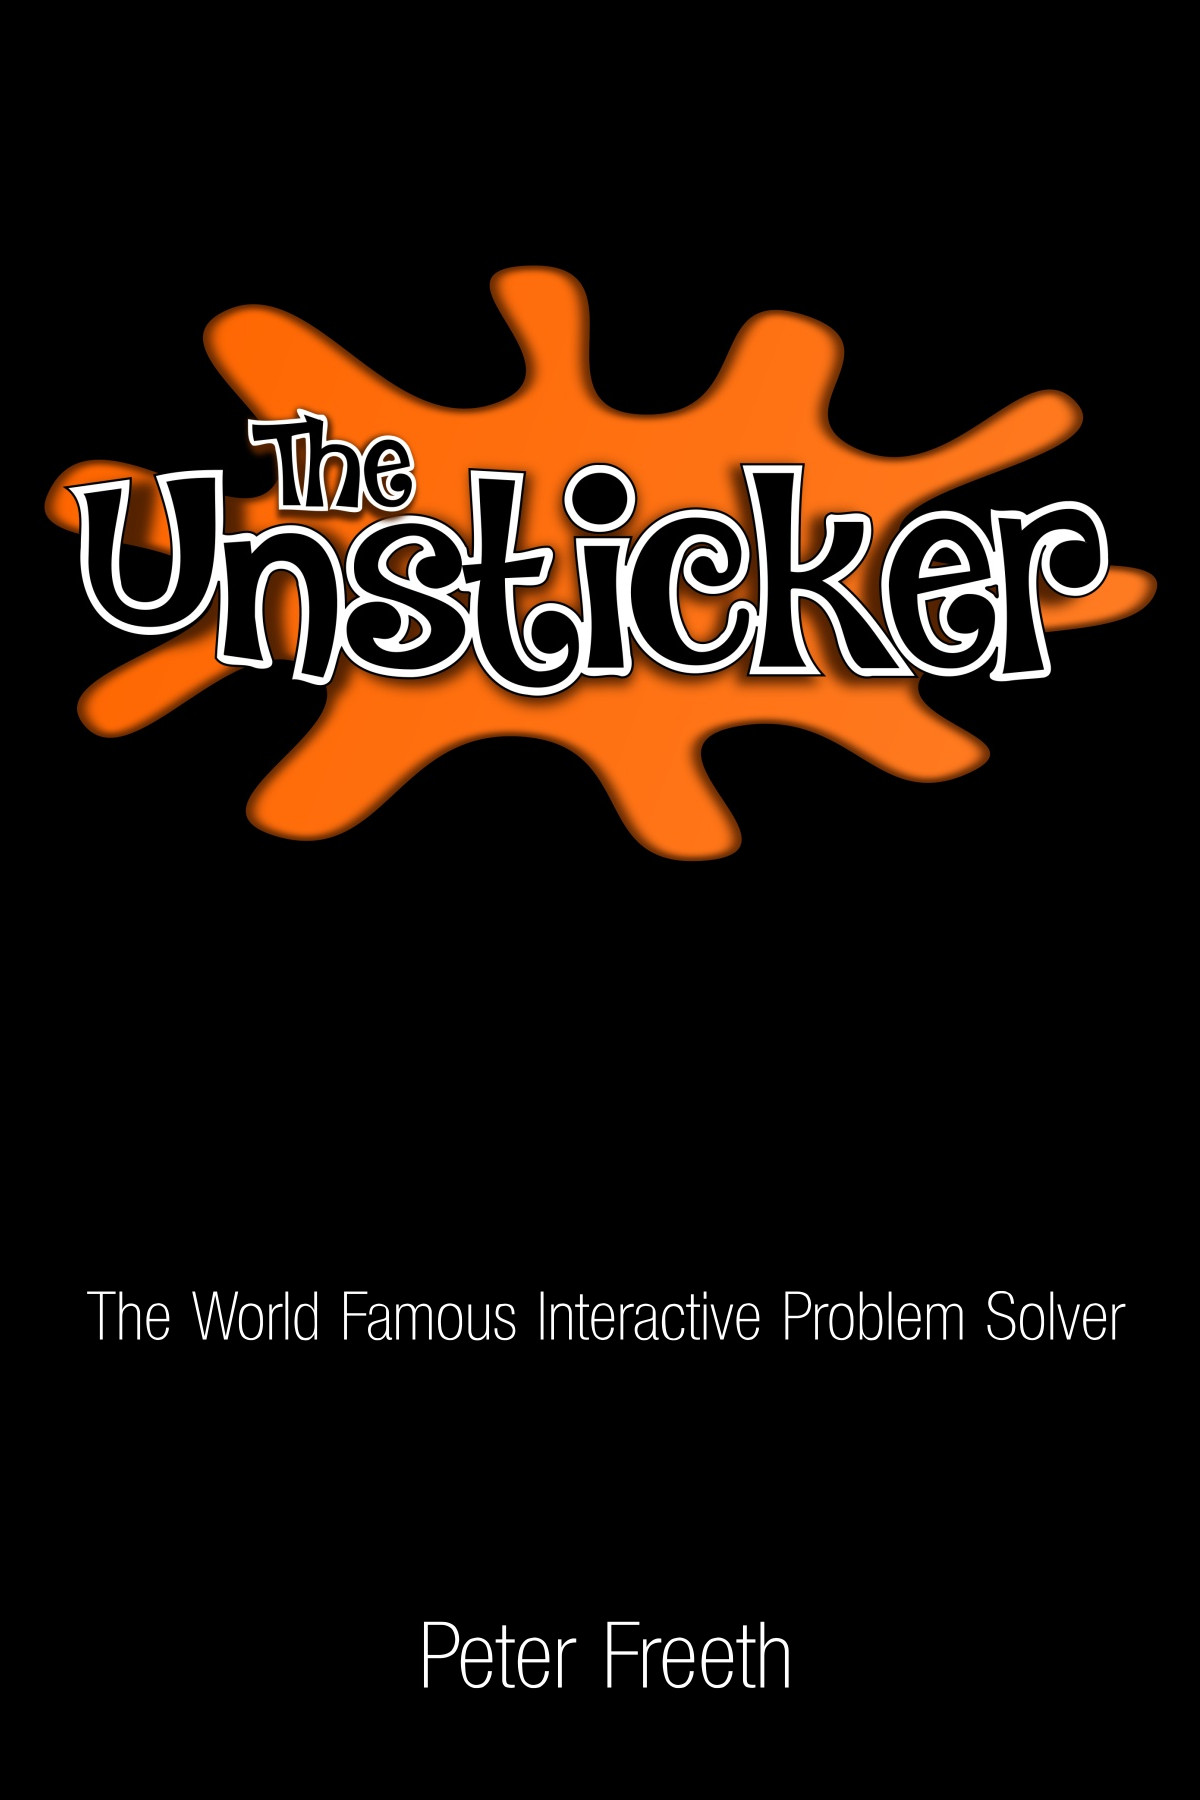 The Unsticker by Peter Freeth.  The Unsticker is an amazing creative problem solving tool. Take even the stickiest, most challenging problem, ask yourself random questions from the book and, after just 4 or 5 questions, BANG! and the problem's gone!